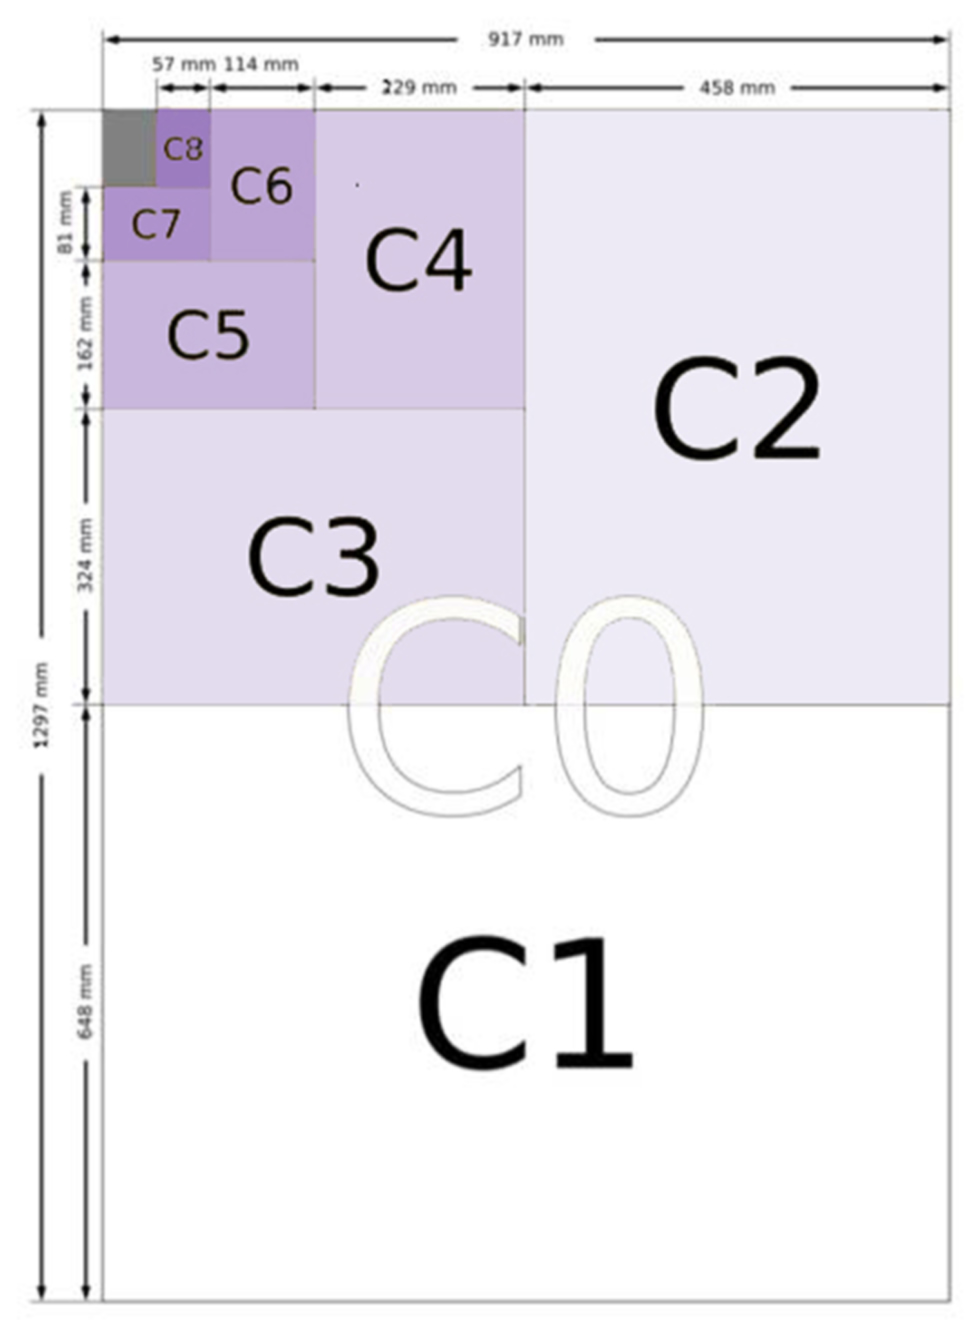 Diagram of C Envelope Sizes & Their Relationships